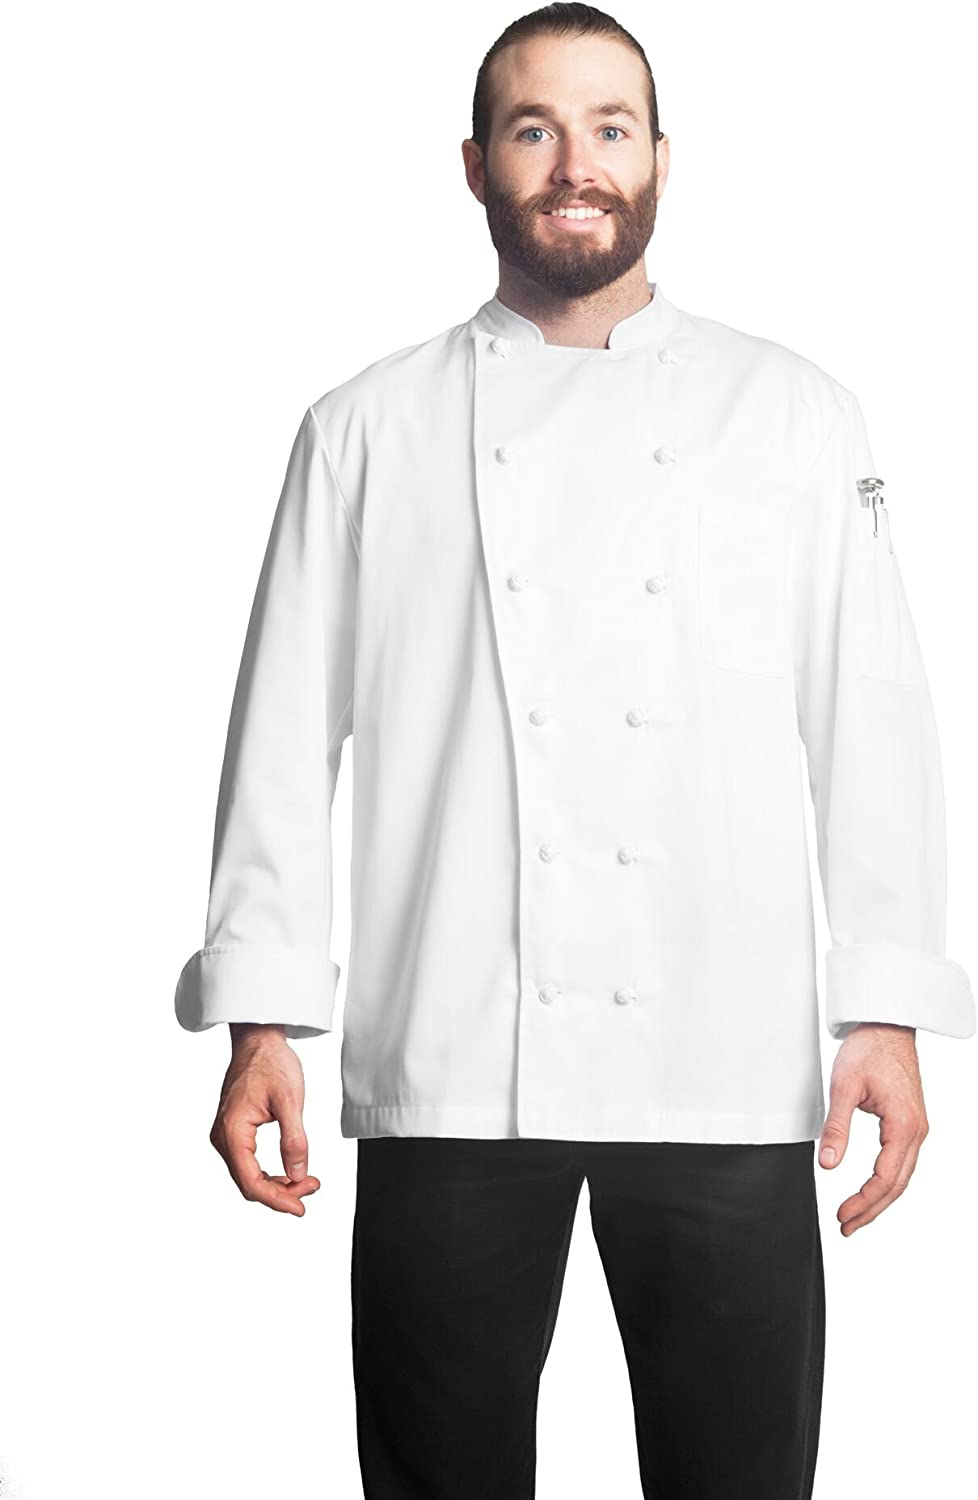 Bragard Super-cheap Alfred Long Sleeve Chef Jacket Ideal Kitchen for Popular brand Wear Po